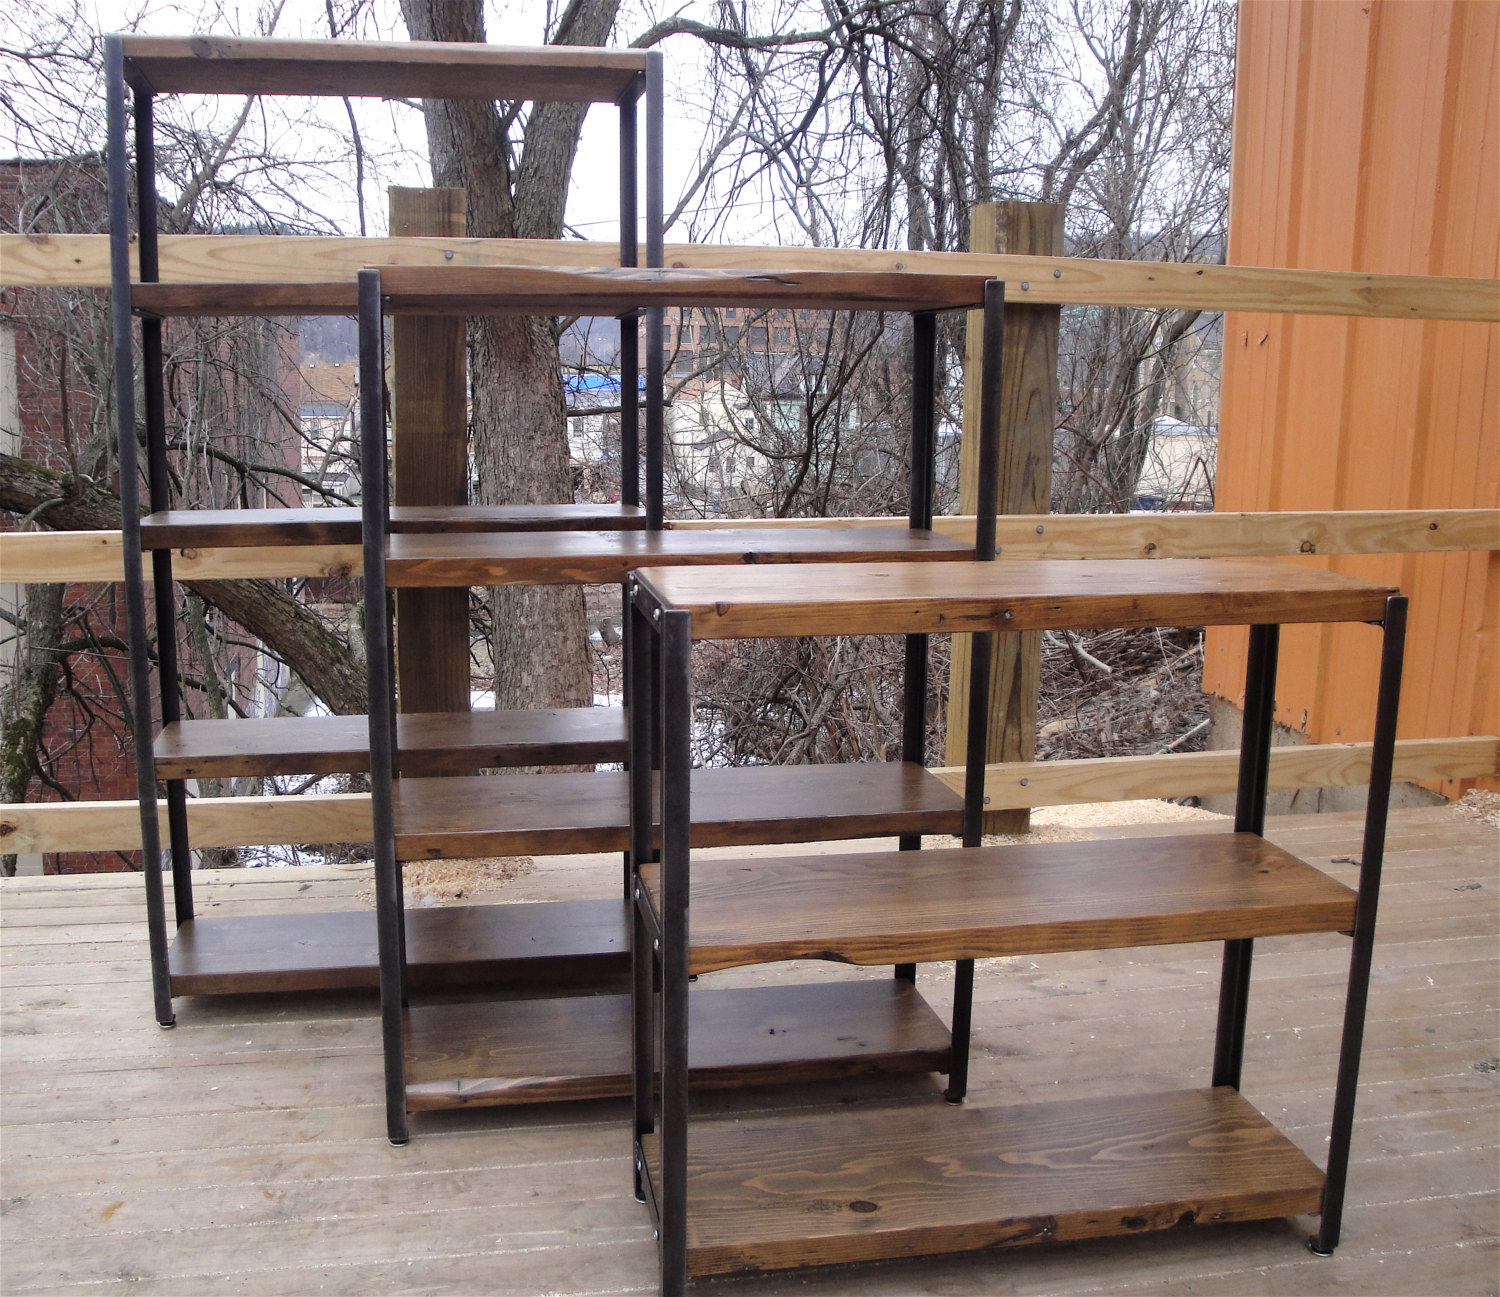 Bookcases made to order of reclaimed wood and recycled angle iron mid century industrial primitive furnishings